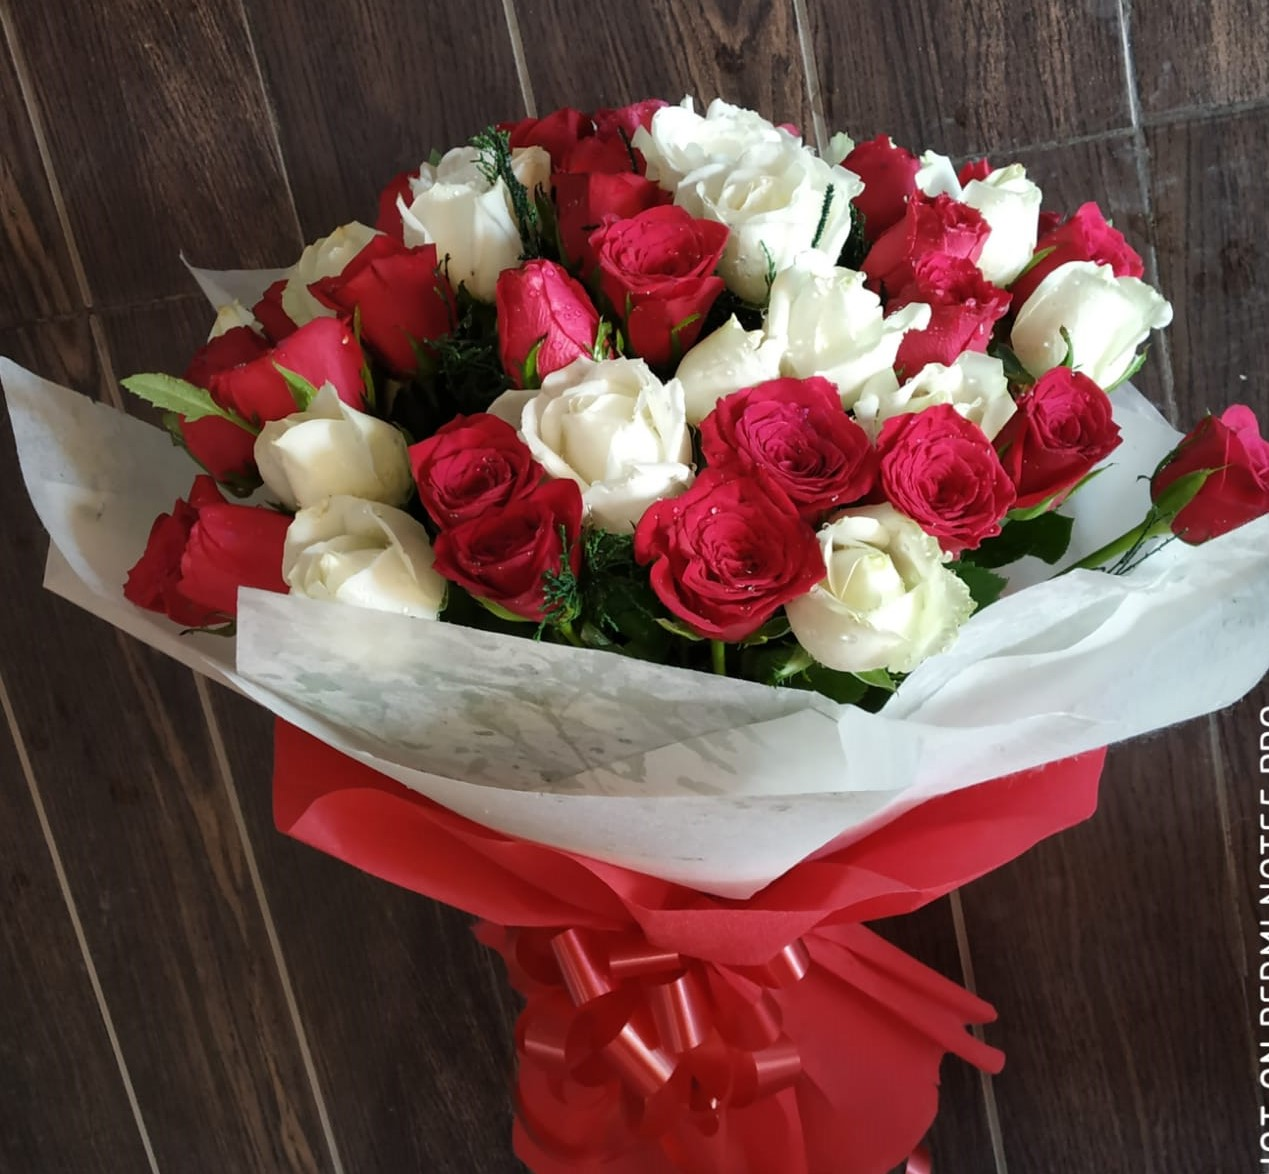 Flowers Delivery in Sector 17 GurgaonRed & White Roses in Duble Layer Packing